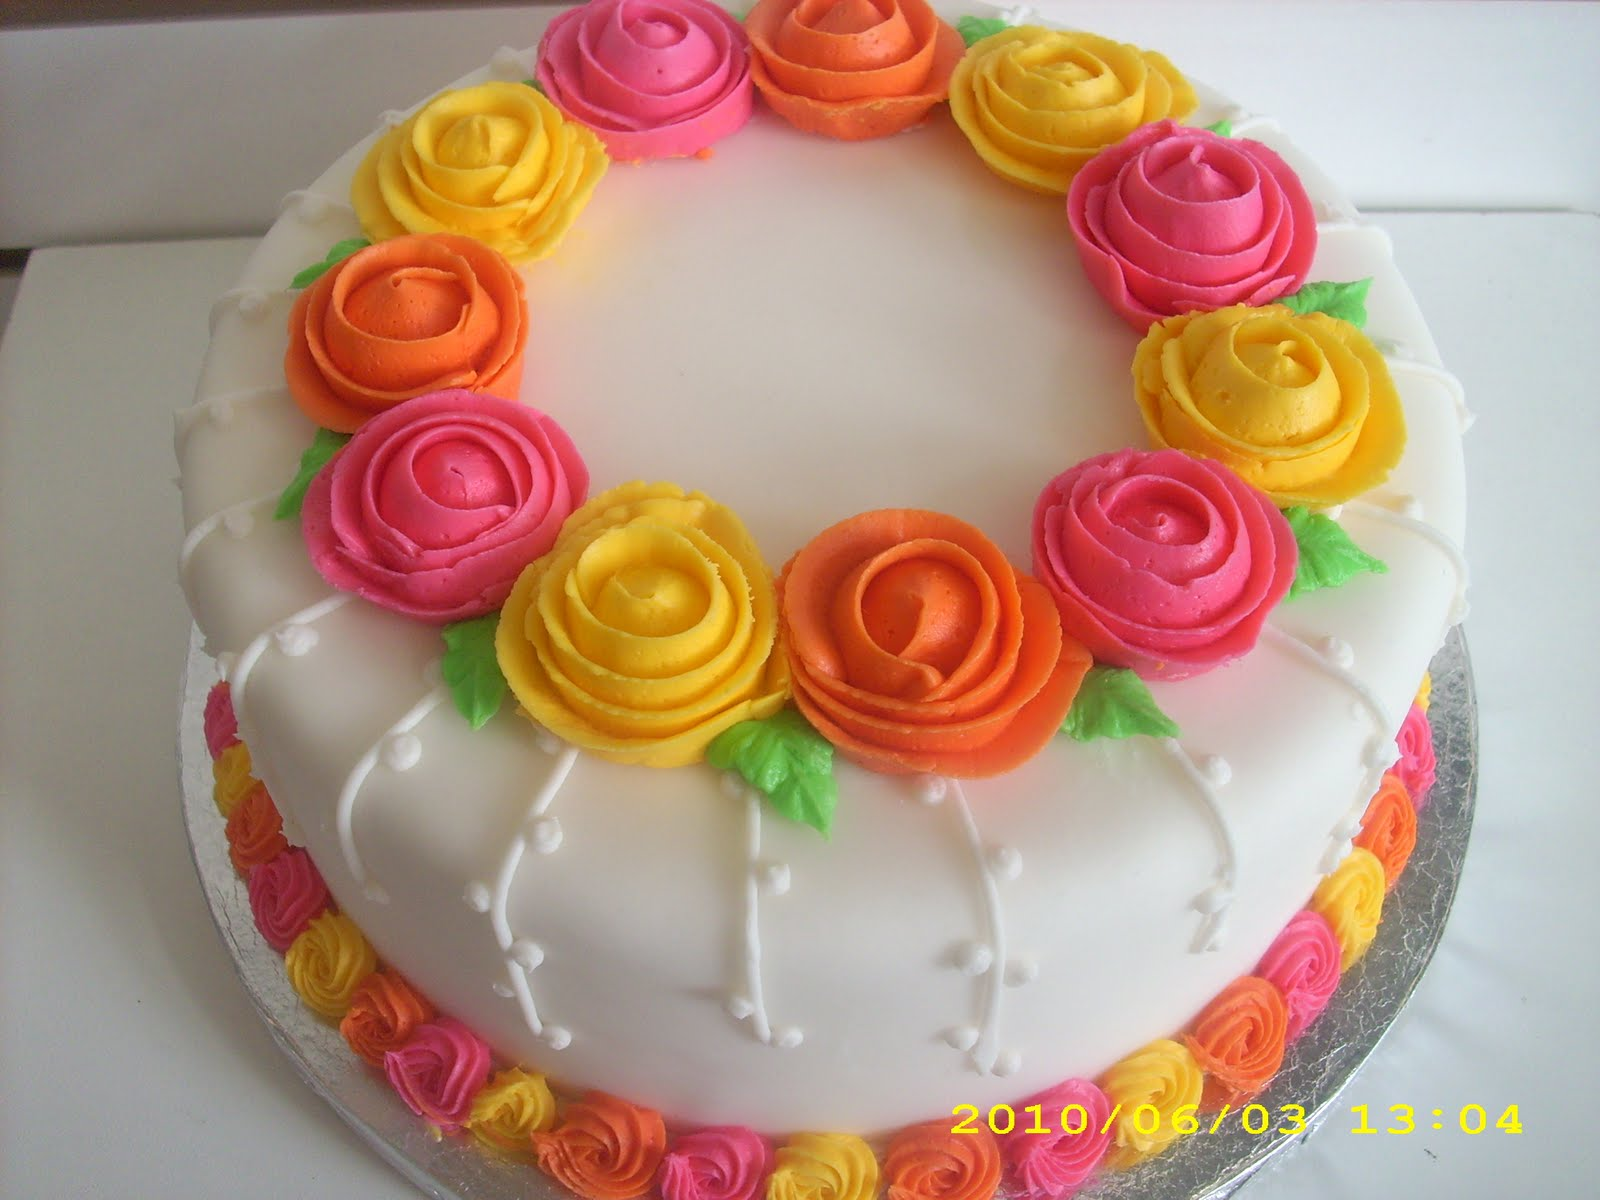 Cake Decorations And Ideas : Cake Decorating heydanixo